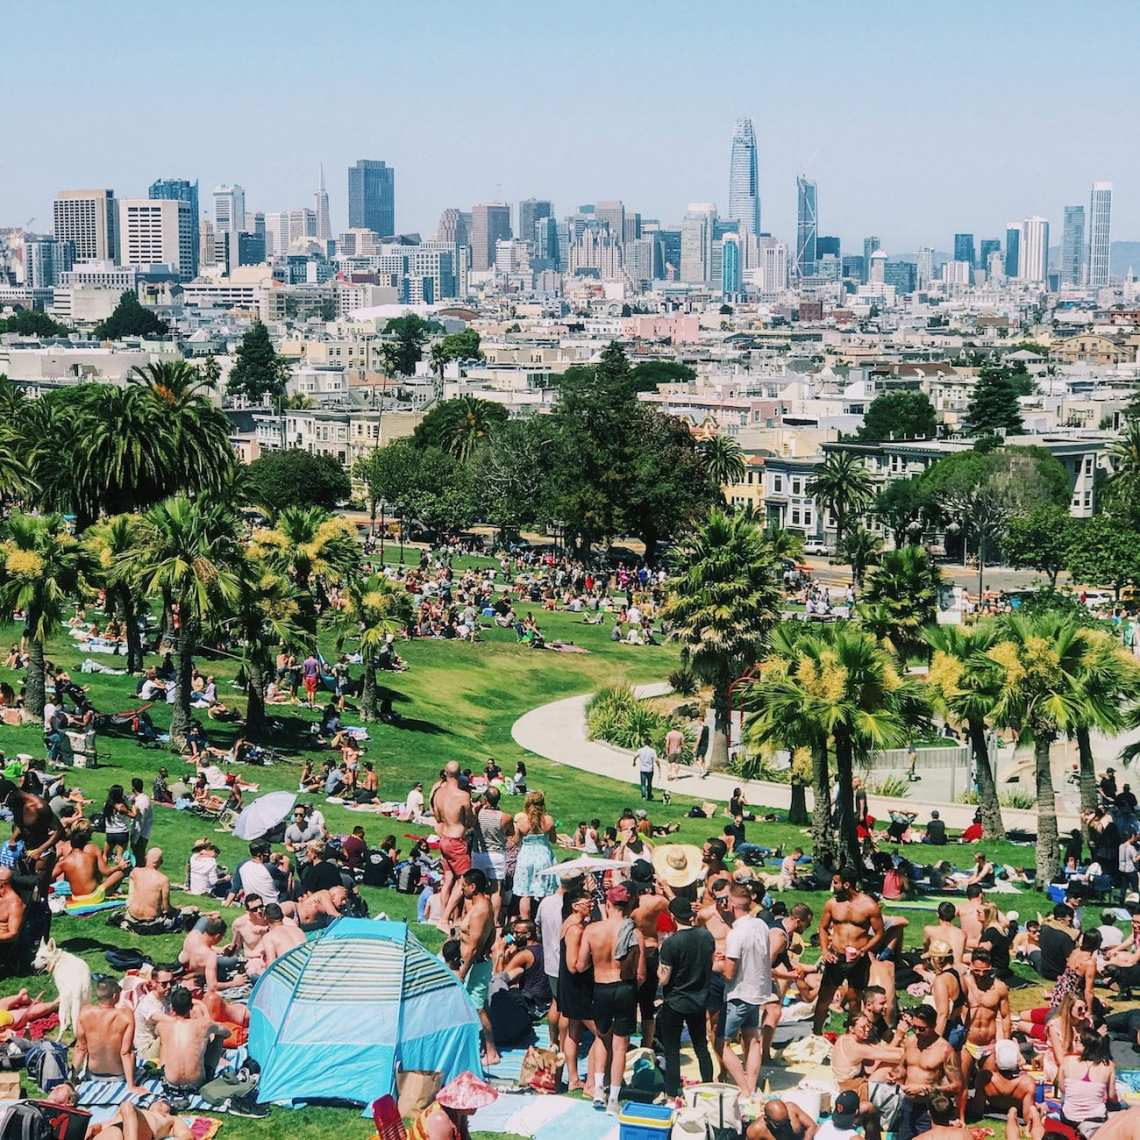 San Francisco's Dolores Park on a warm, sunny day.